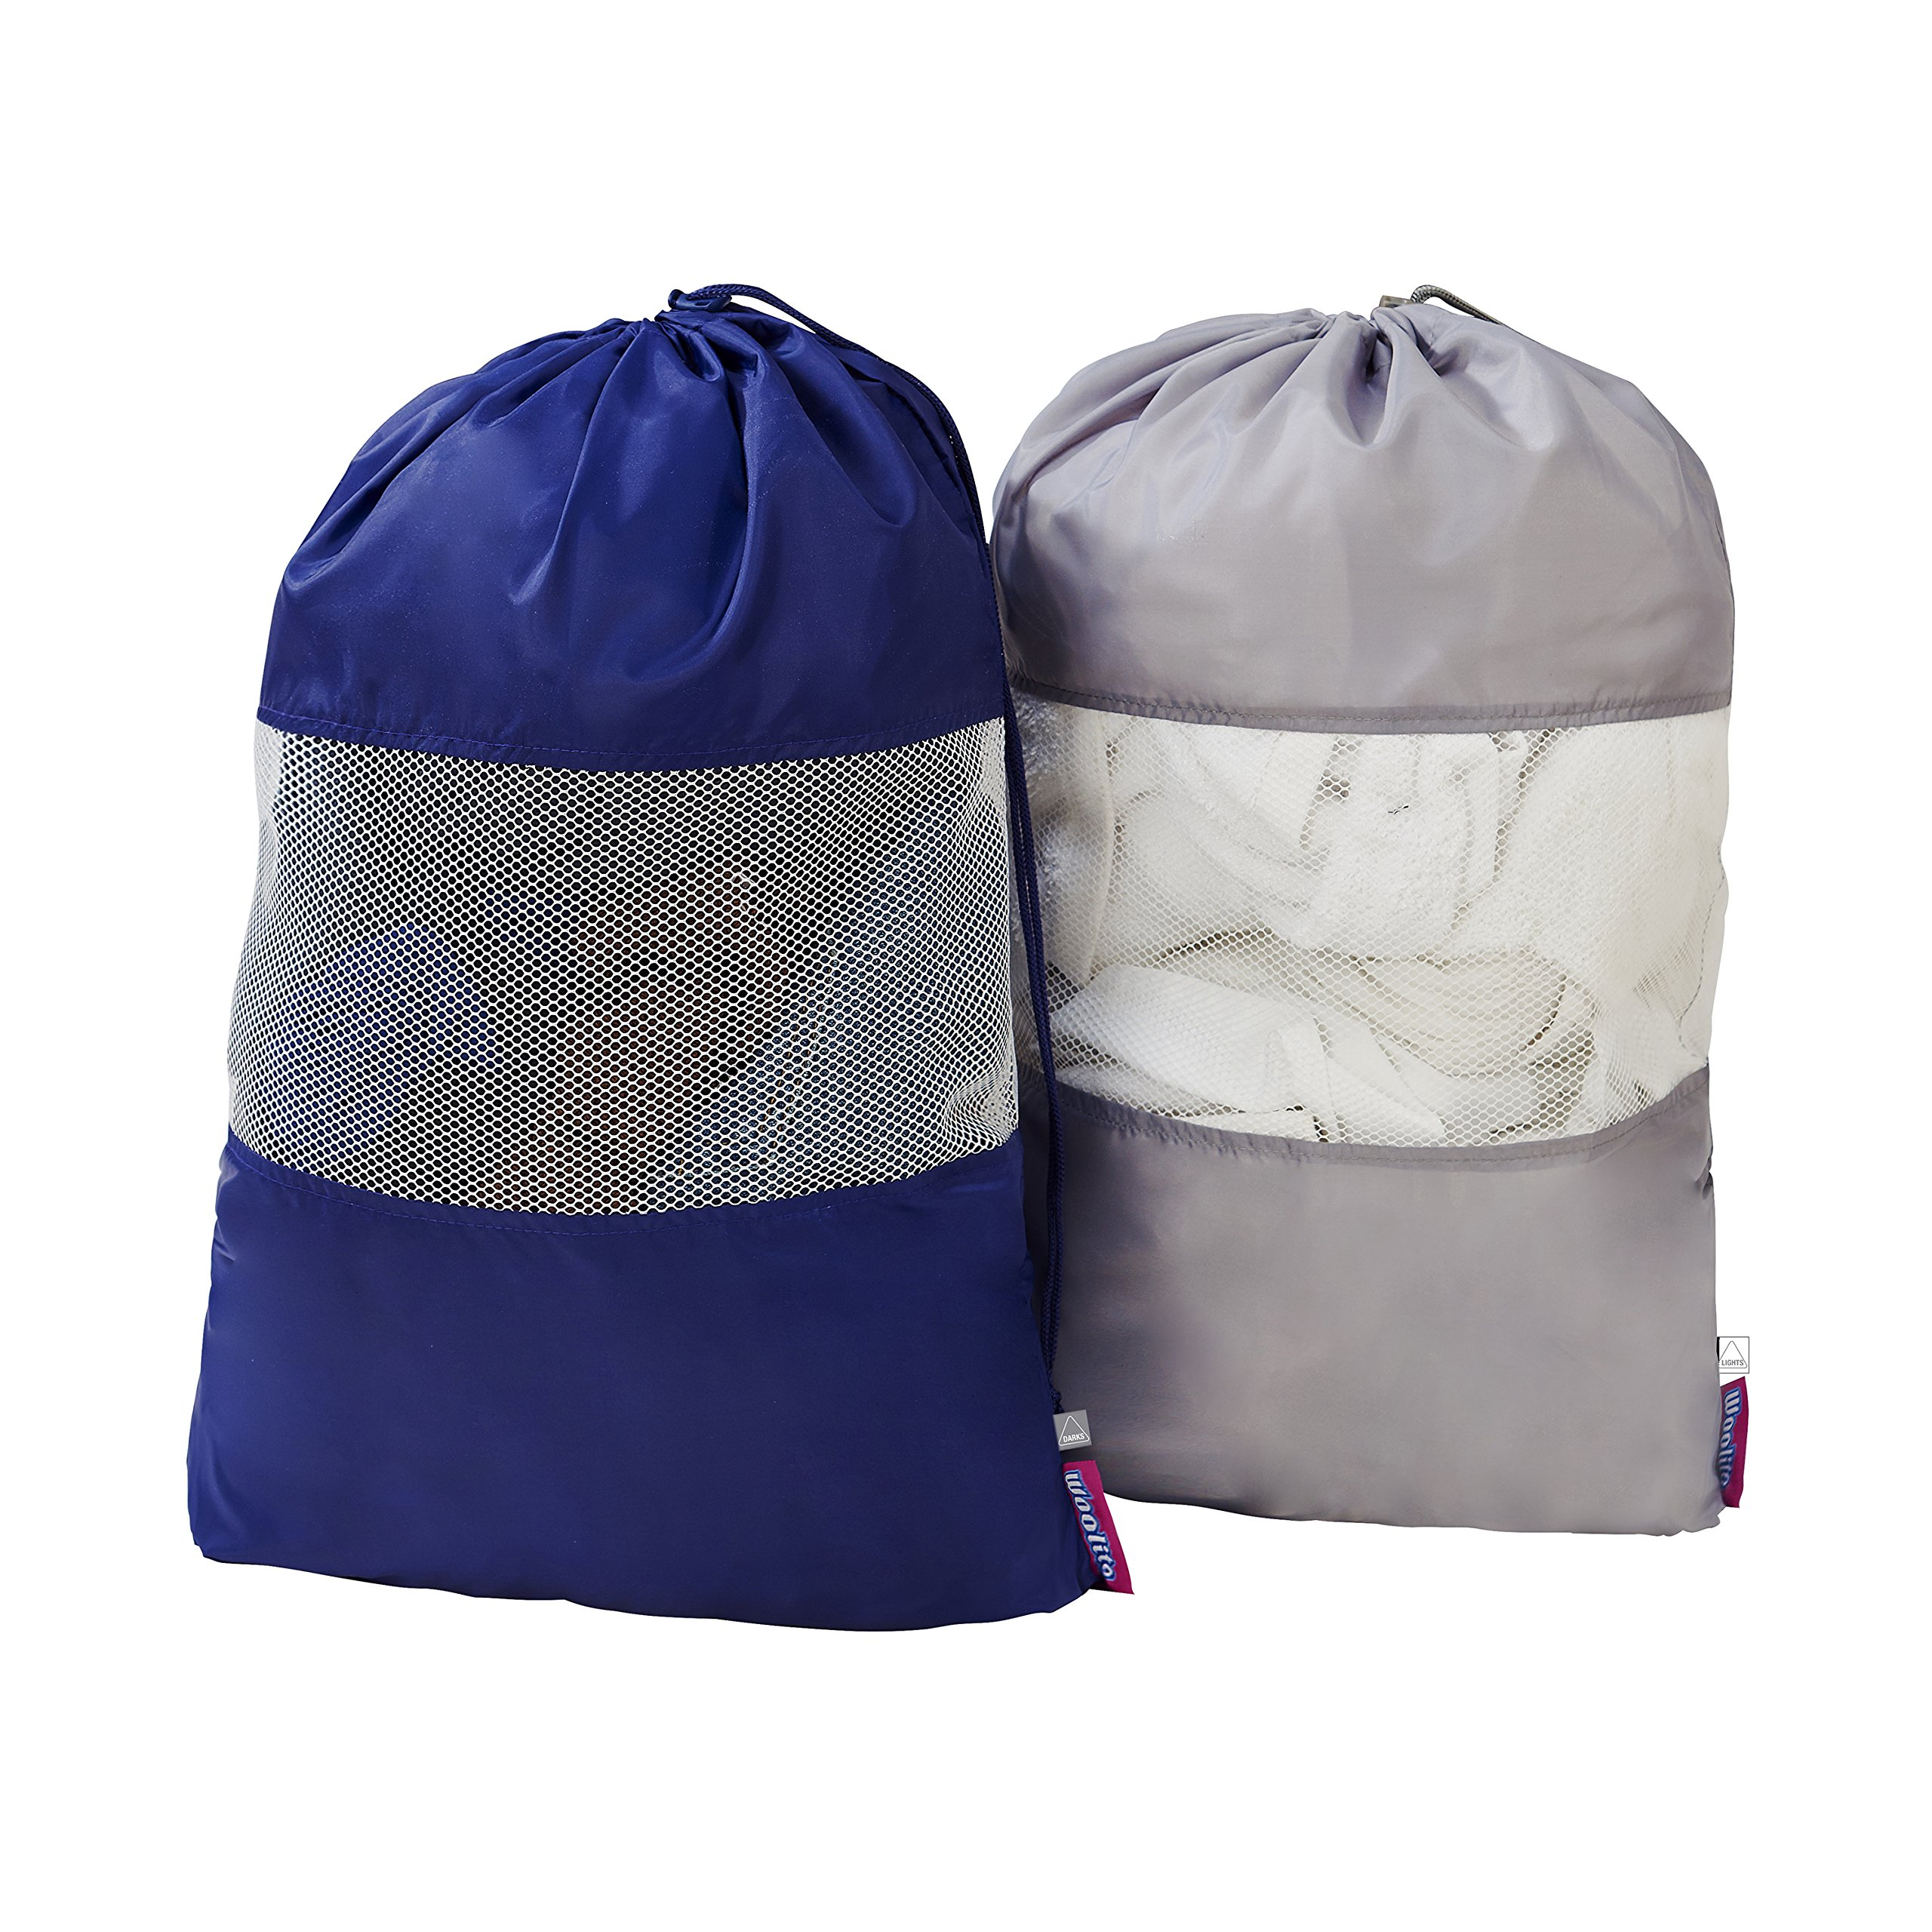 Woolite 2 Pack Sanitized Laundry Bag with Mesh Window